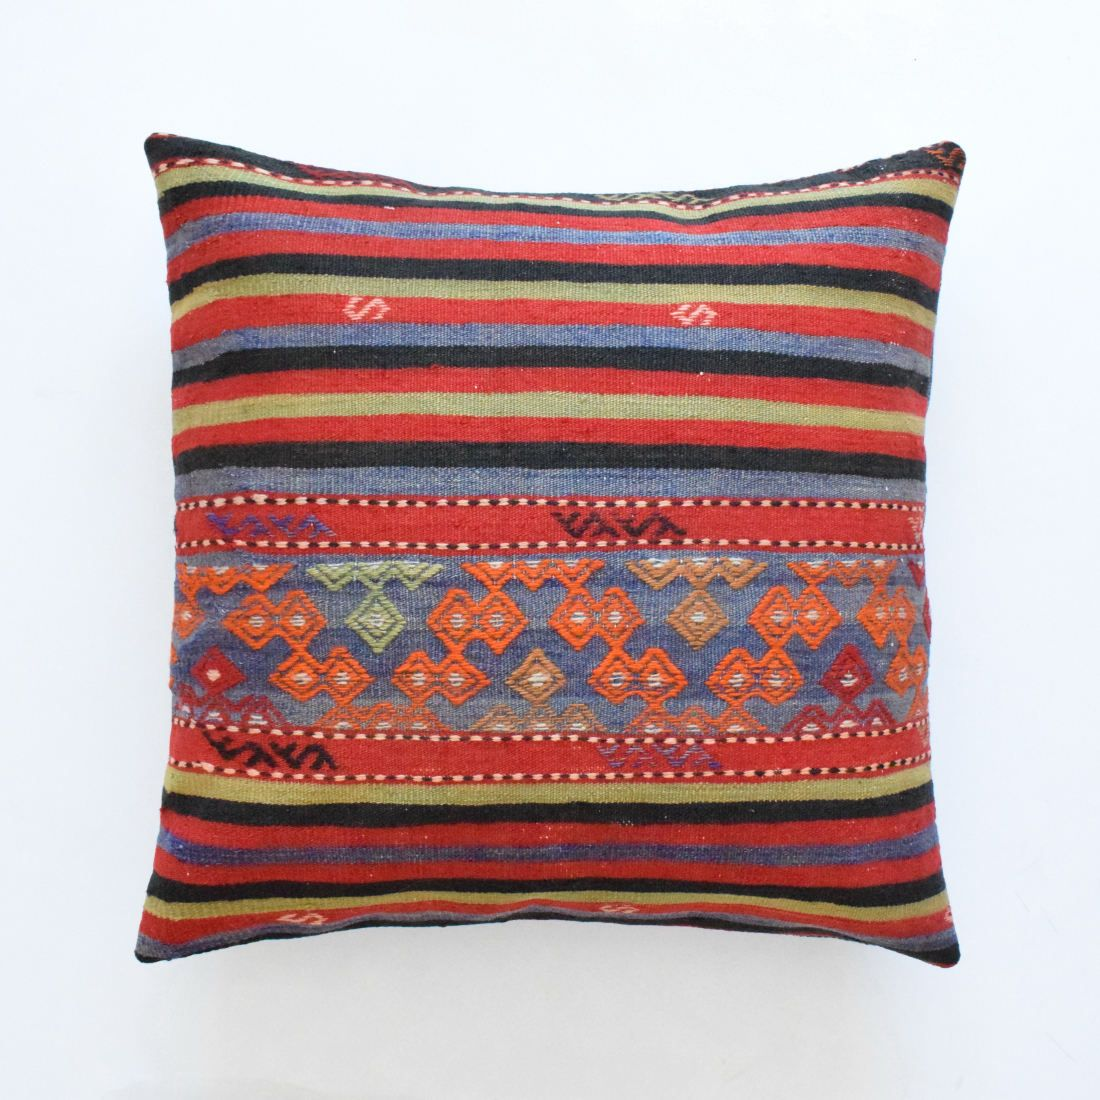 Kussenhoezen 70x70 Housse De Coussin Turkish Pillow Tribal Cushion Marokkaanse